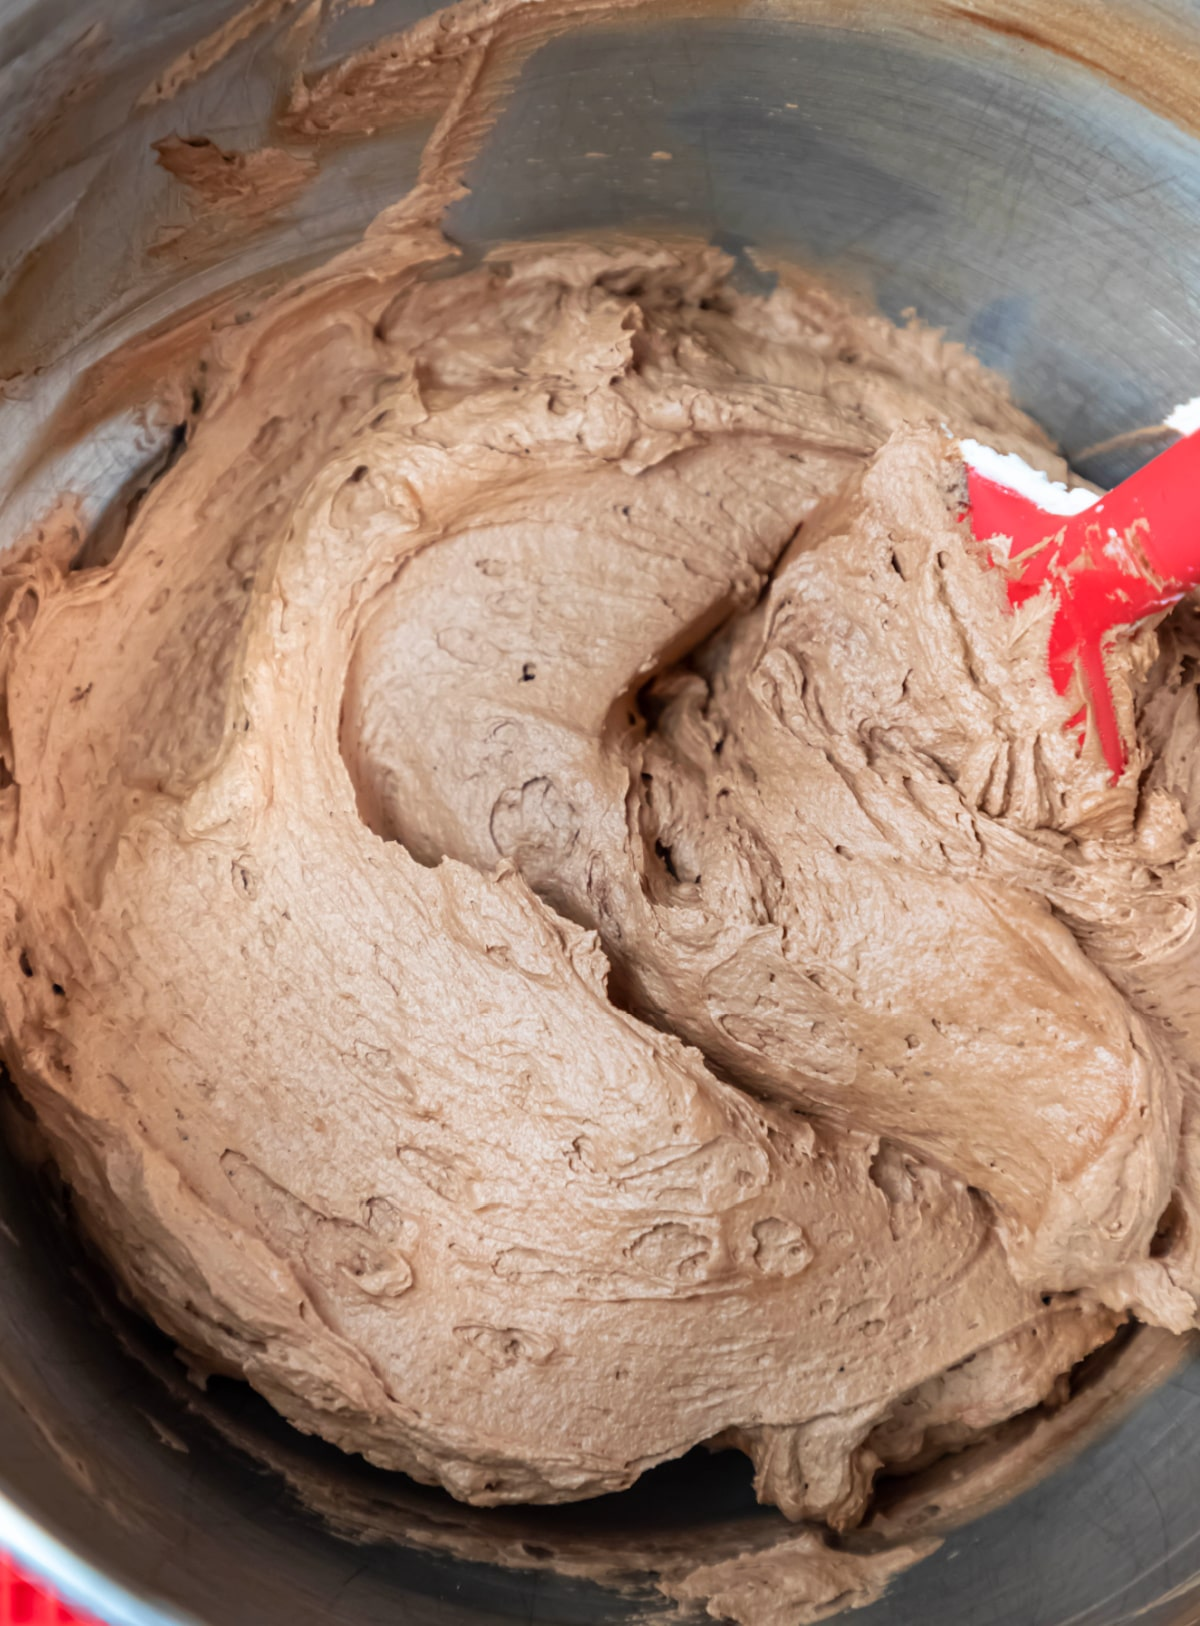 Chocolate buttercream frosting in a silver mixing bowl